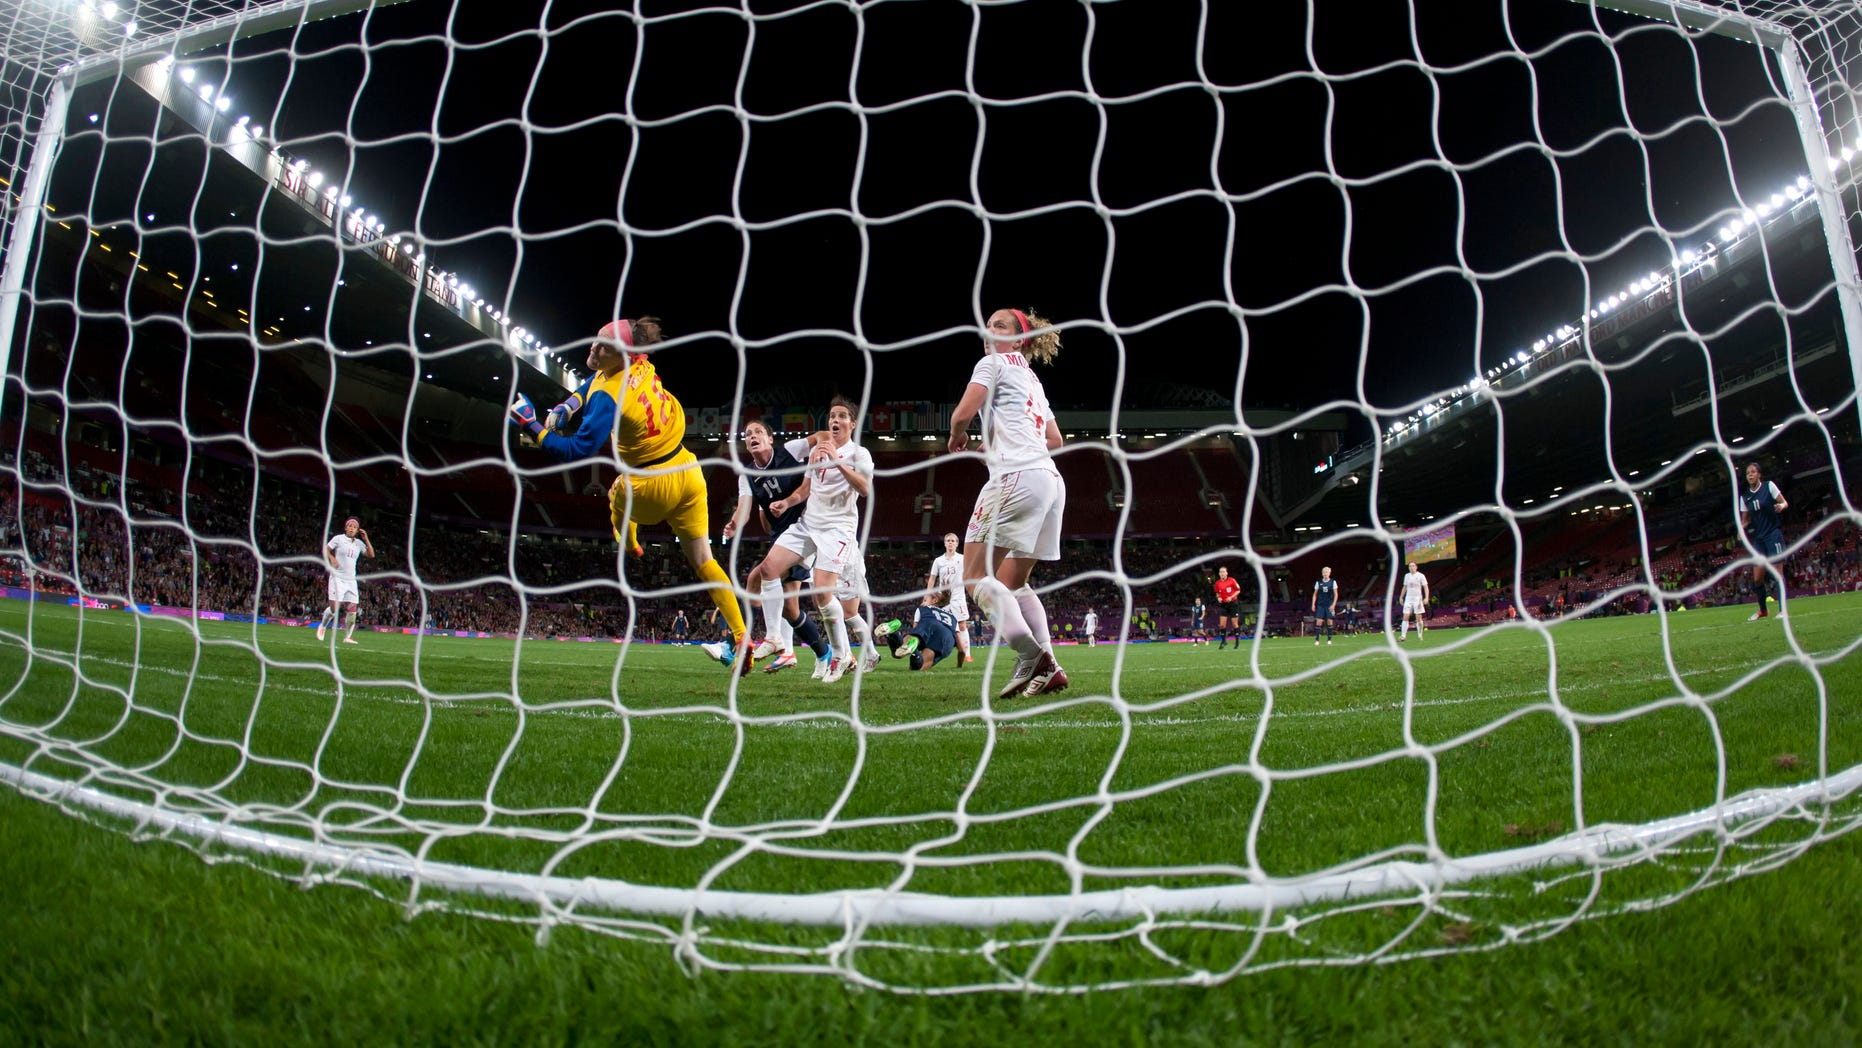 Aug. 6, 2012: Canada's goalkeeper Erin Mcleod, center left, dives in vain as the United States' Alex Morgan, bottom center, scores the winning goal during their semifinal women's soccer match at the 2012 London Summer Olympics at Old Trafford Stadium in Manchester, England.